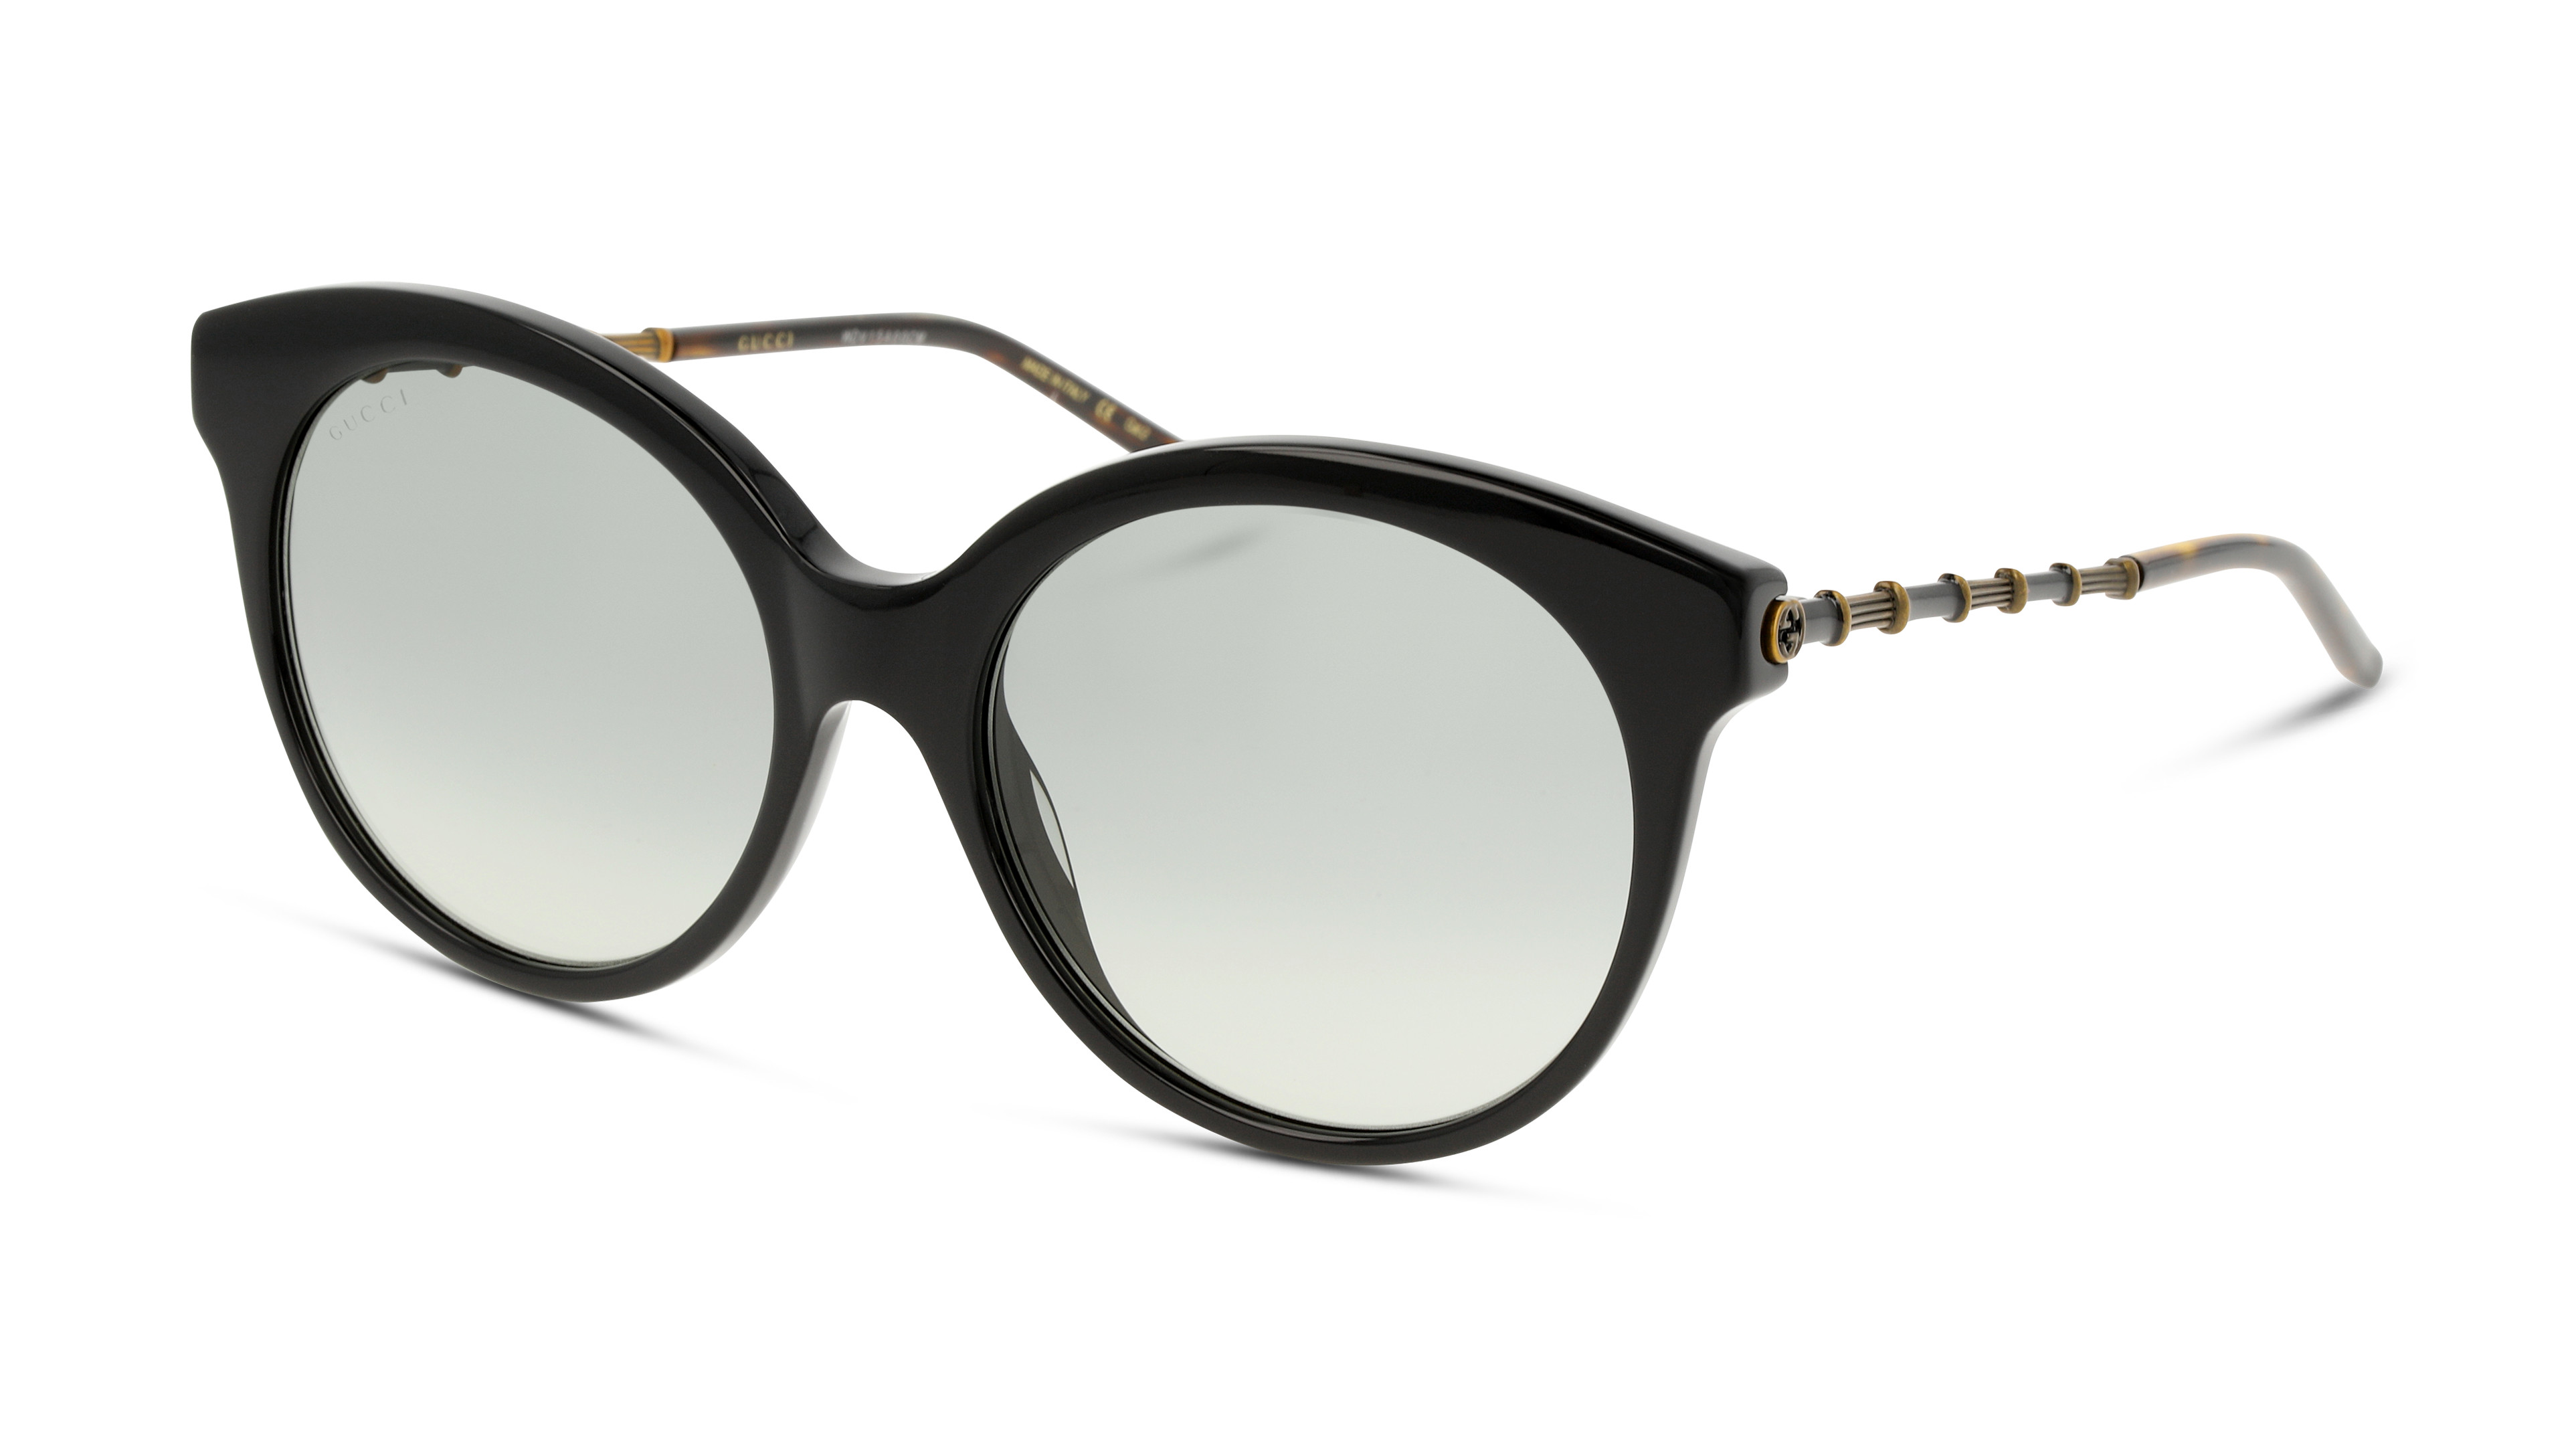 8056376303643-angle-03-gucci-gg0653s-eyewear-black-gold-grey